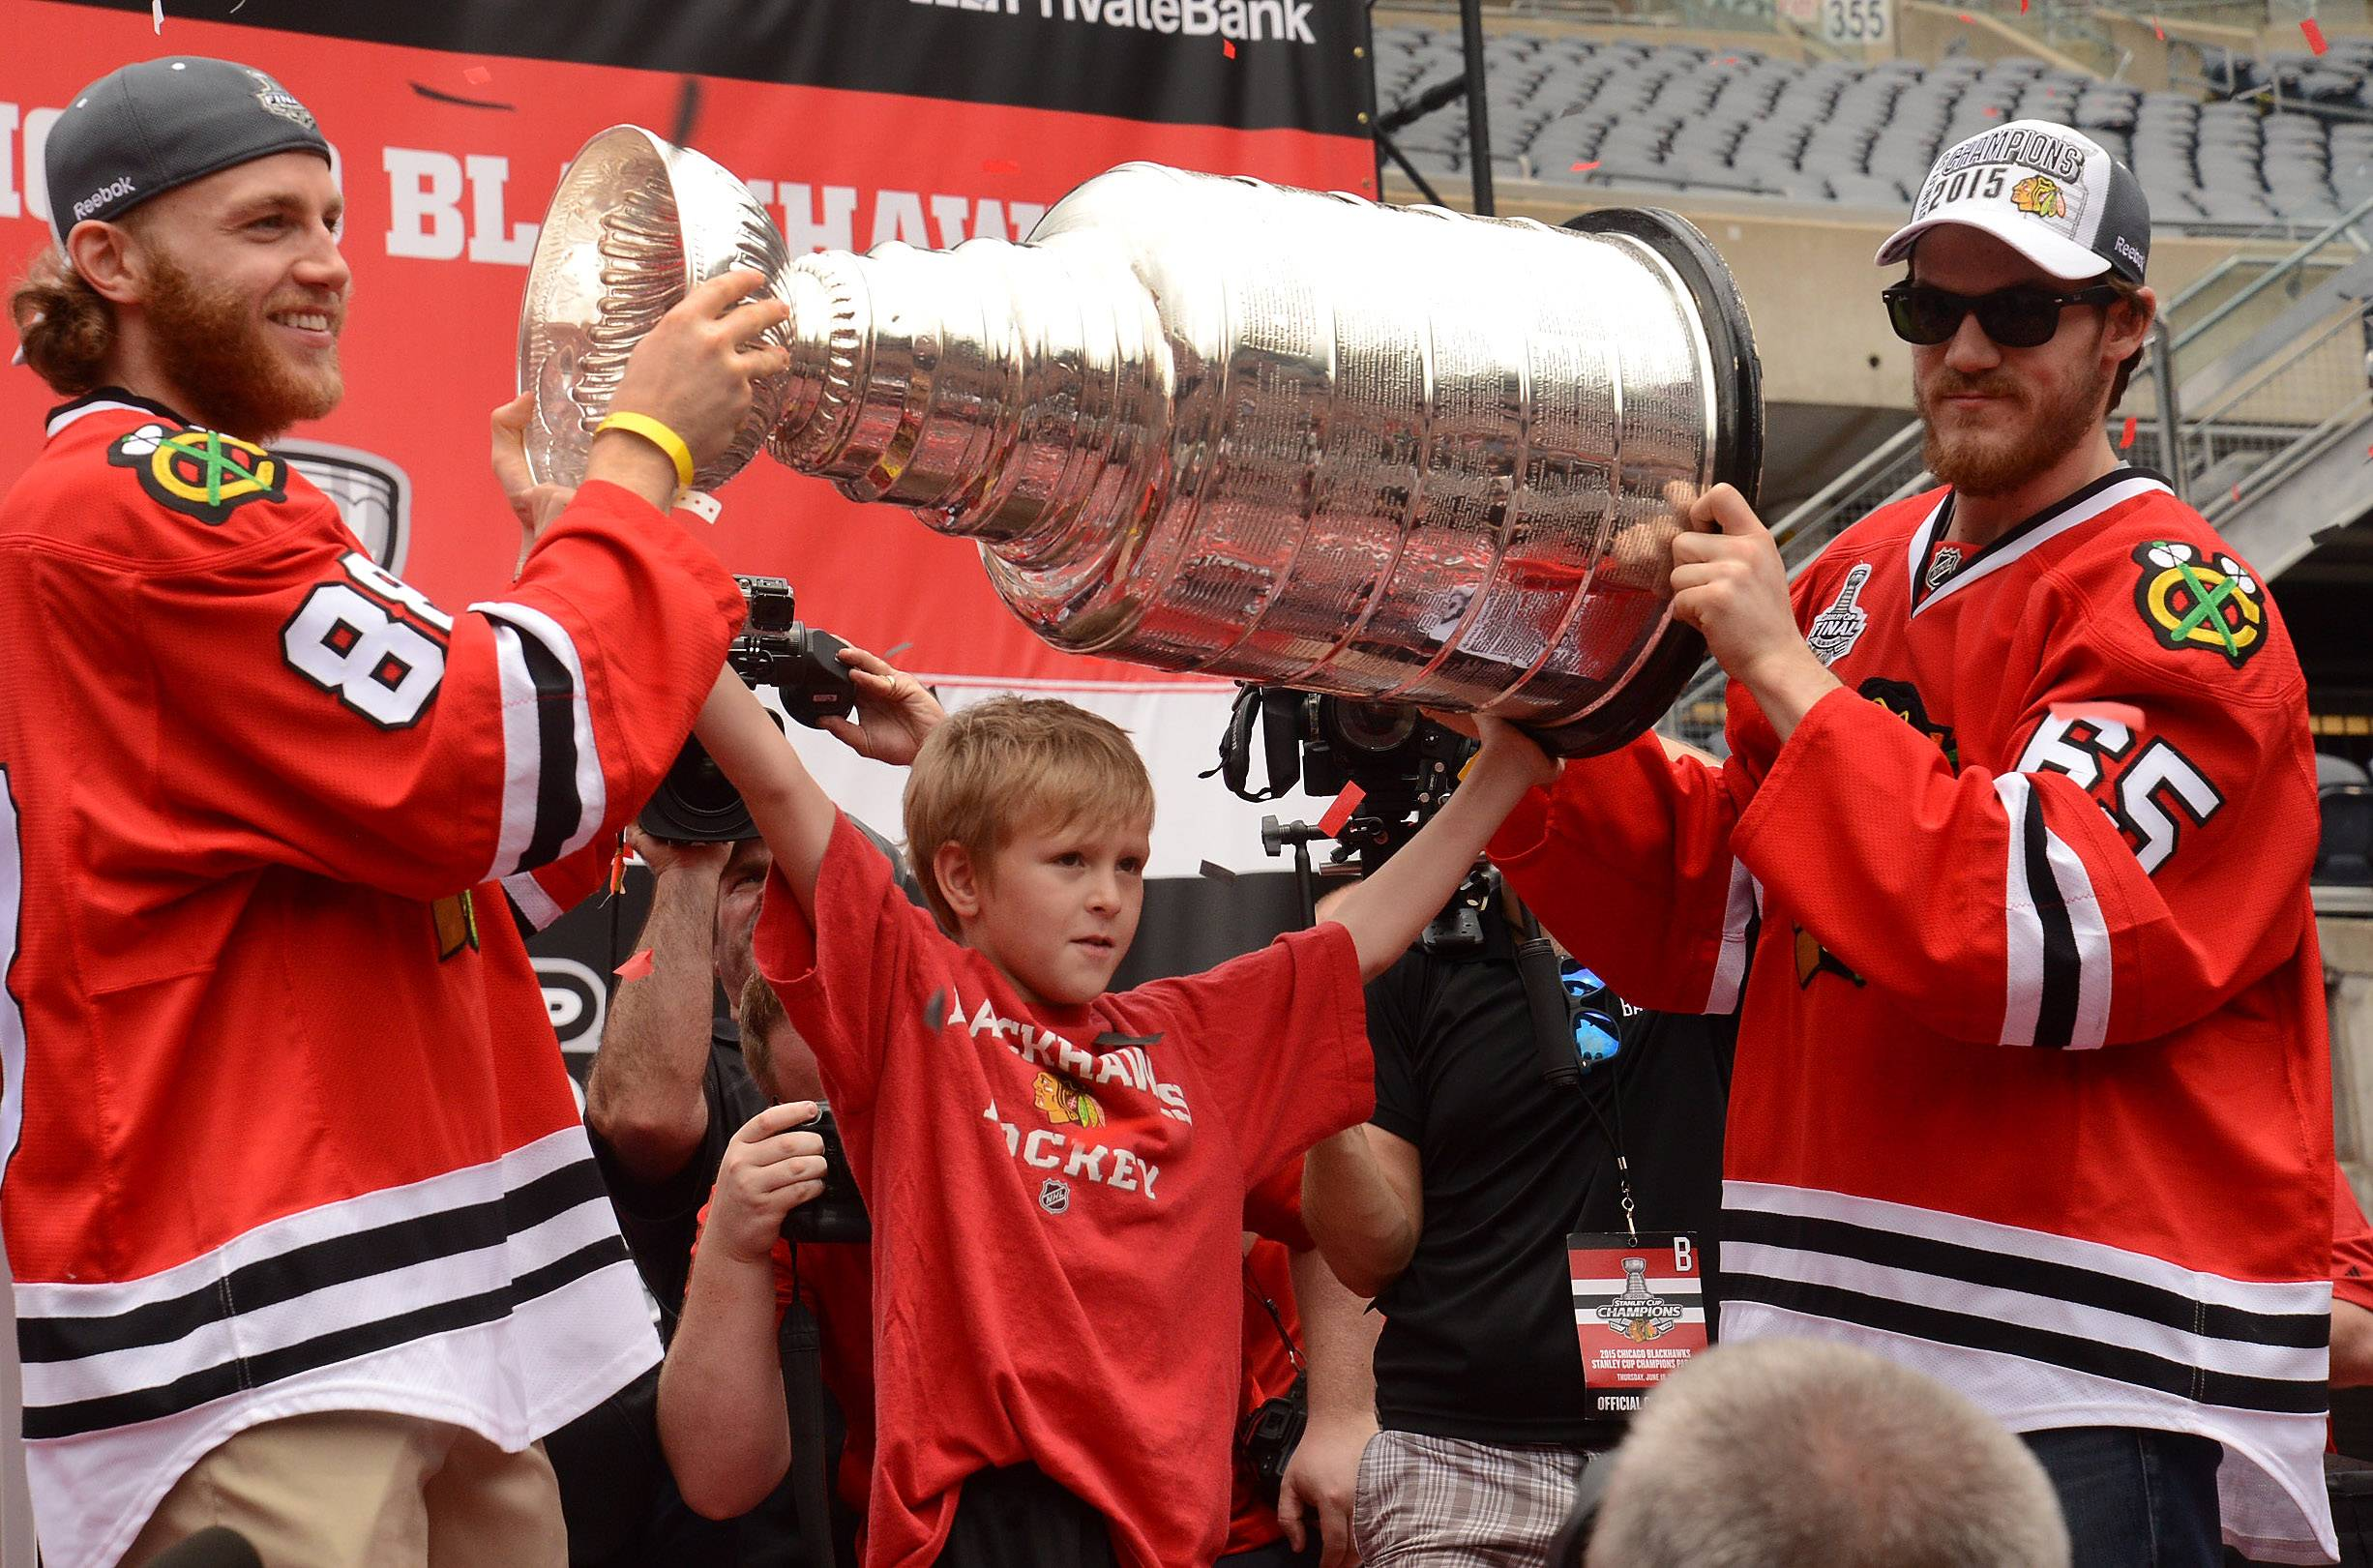 Rally caps off emotional day for Blackhawks, fans